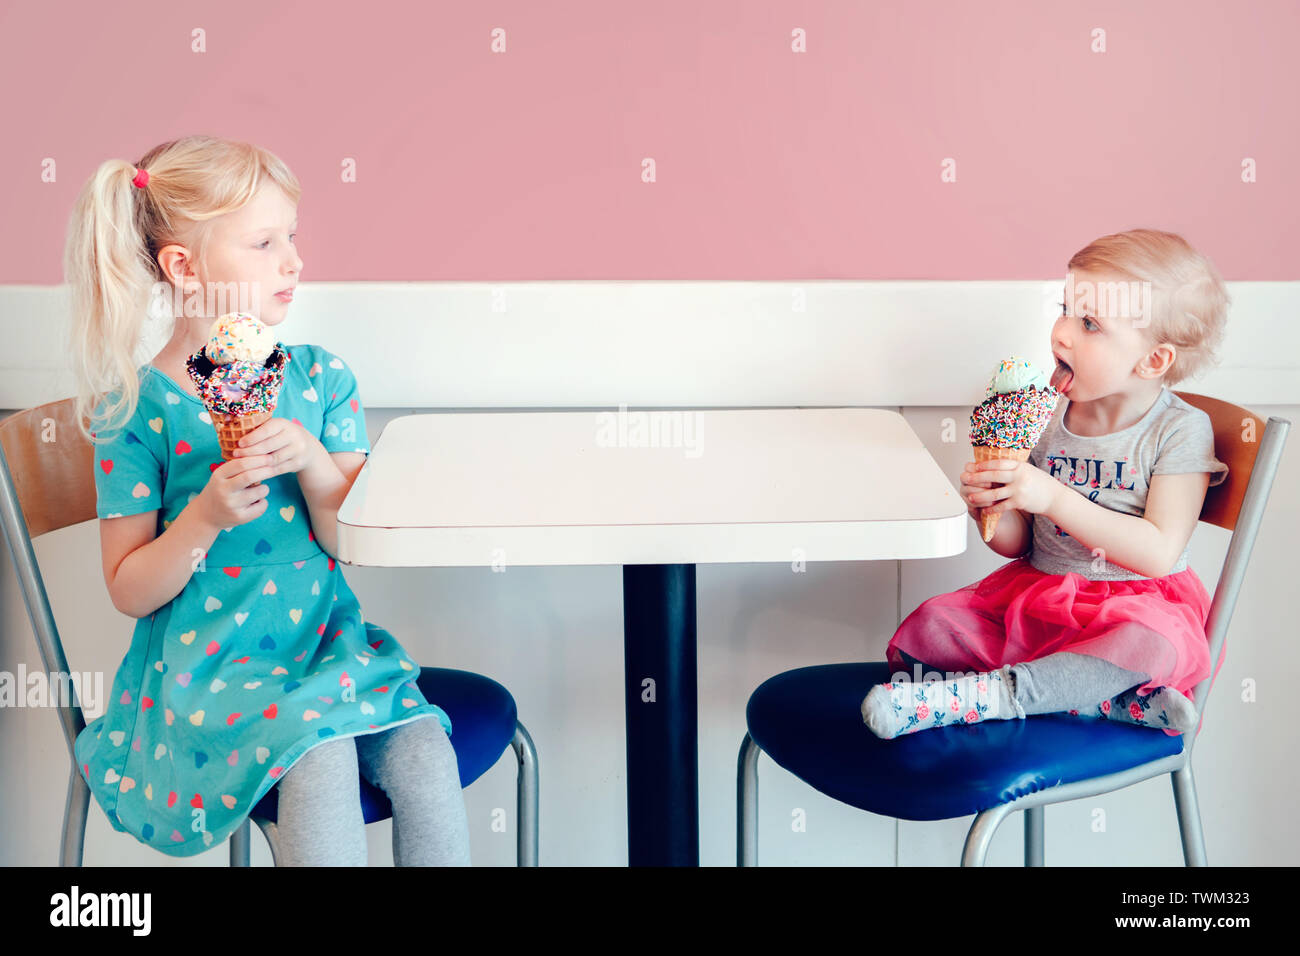 Lifestyle portrait of two happy Caucasian cute adorable funny children girls sitting together bragging boasting their ice-cream. Love envy jealous sis - Stock Image